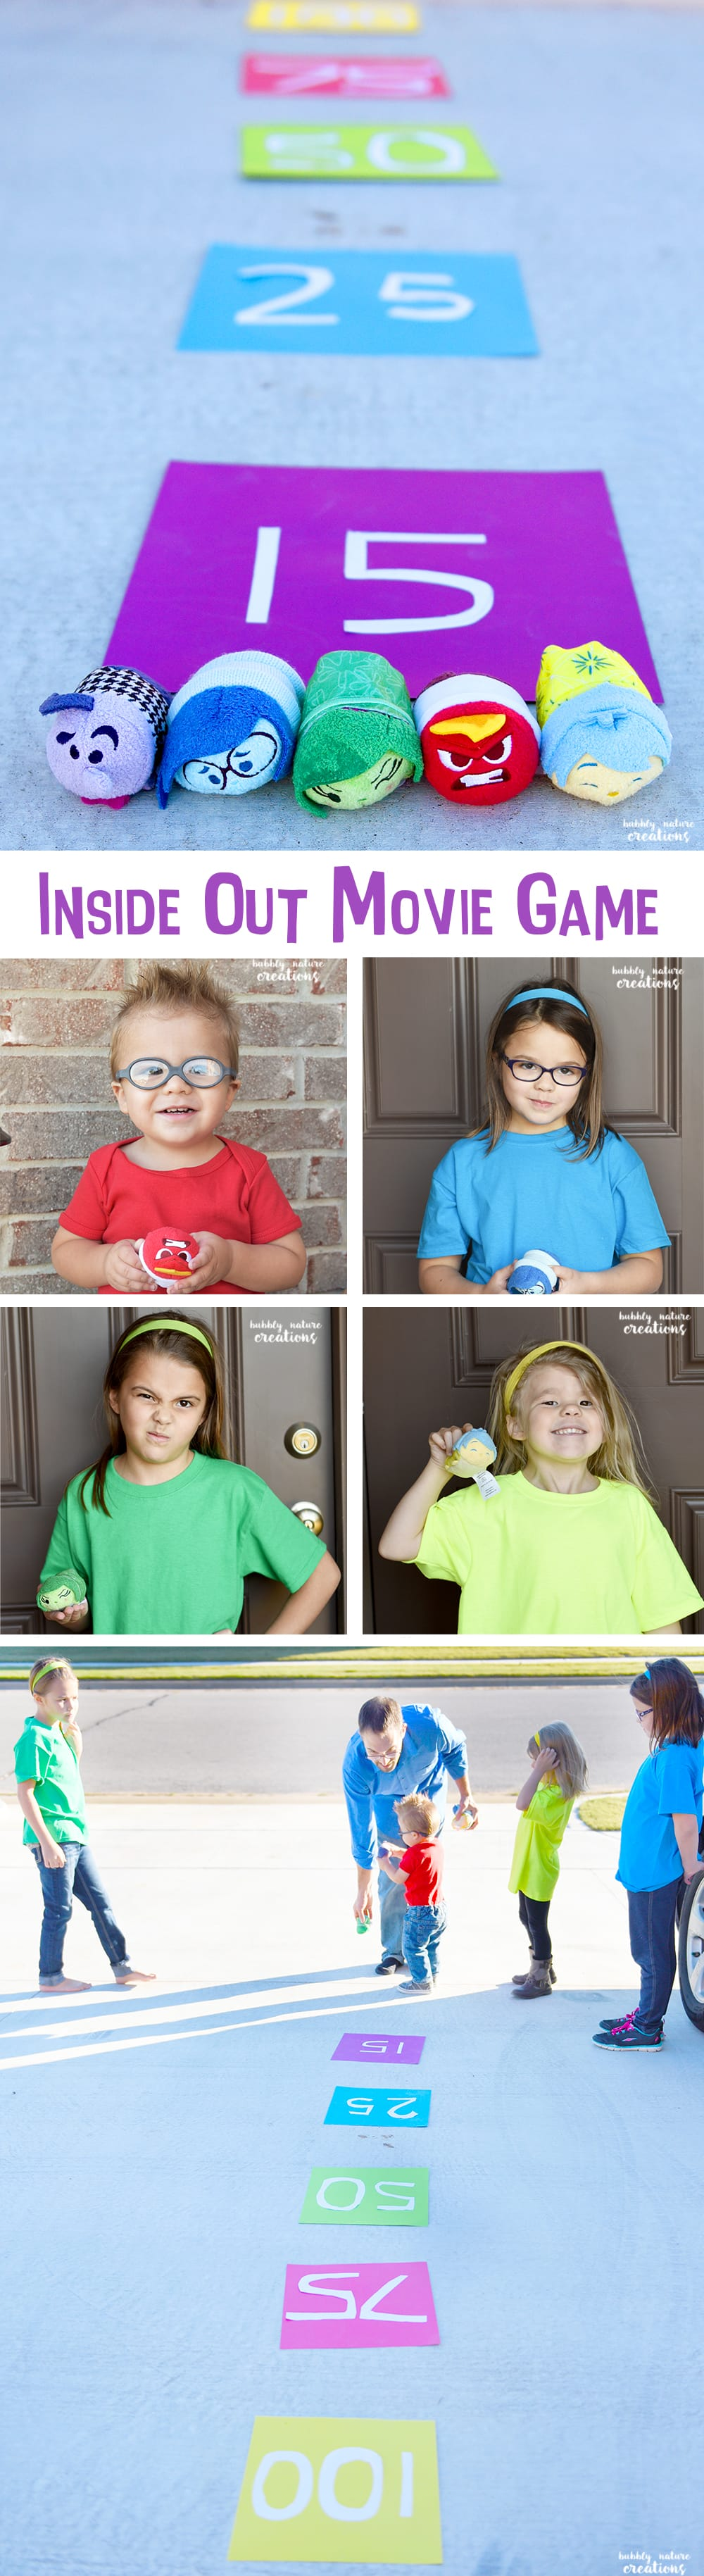 Inside Out Movie Party Game! So fun for an Inside Out Party!